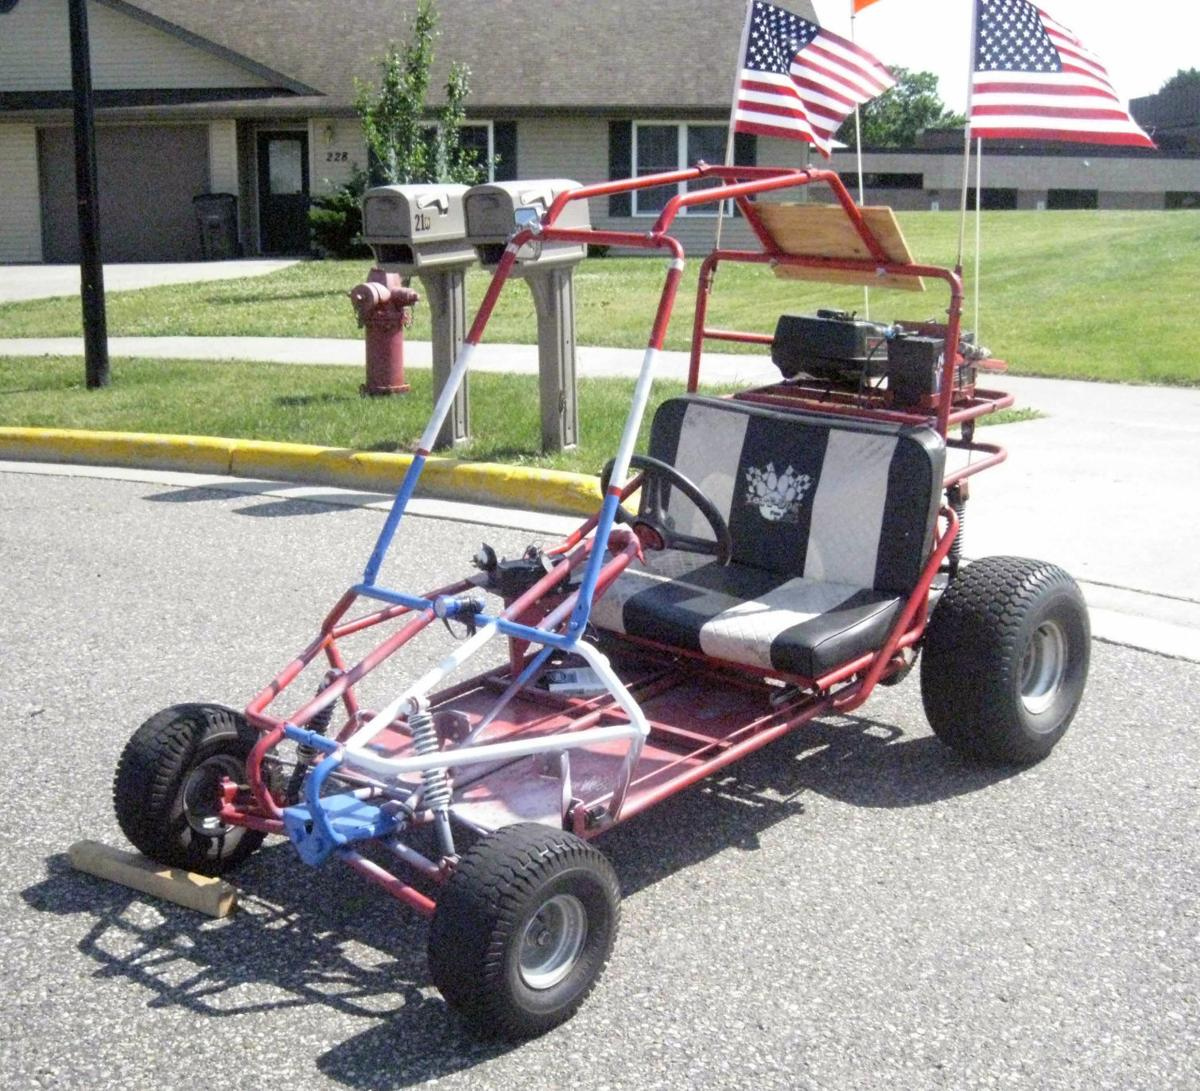 Man gets year in jail for 6th OWI on go-kart